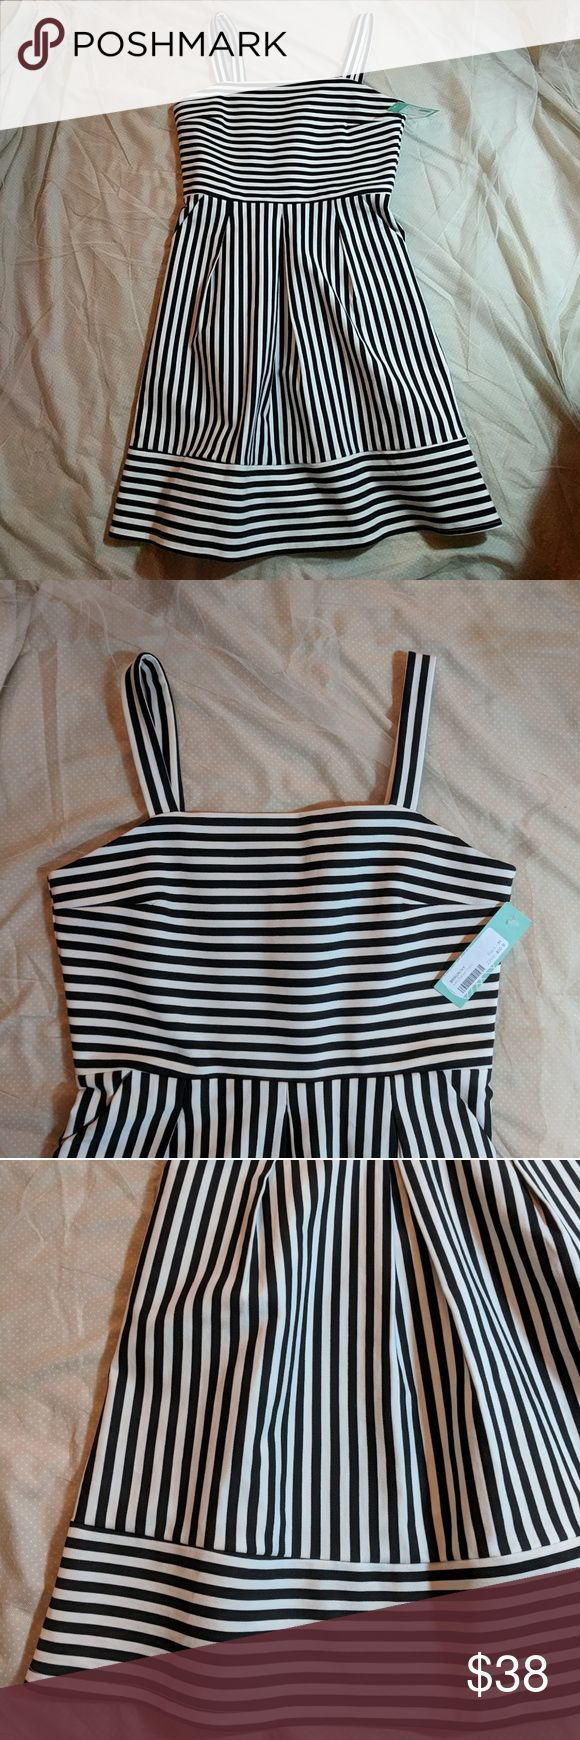 "NWT Brixon Ivy Ponte Black and White Striped Dress Brand new dress called the Levi Ponte by Brixon Ivy bought from Stitch Fix. Cute black and white stripes. Zippered back and made of a somewhat heavy ponte with some stretch. Plus it has pockets!  Length: 36.5"" Bust: 35"" but has stretch Brixon Ivy Dresses Midi"